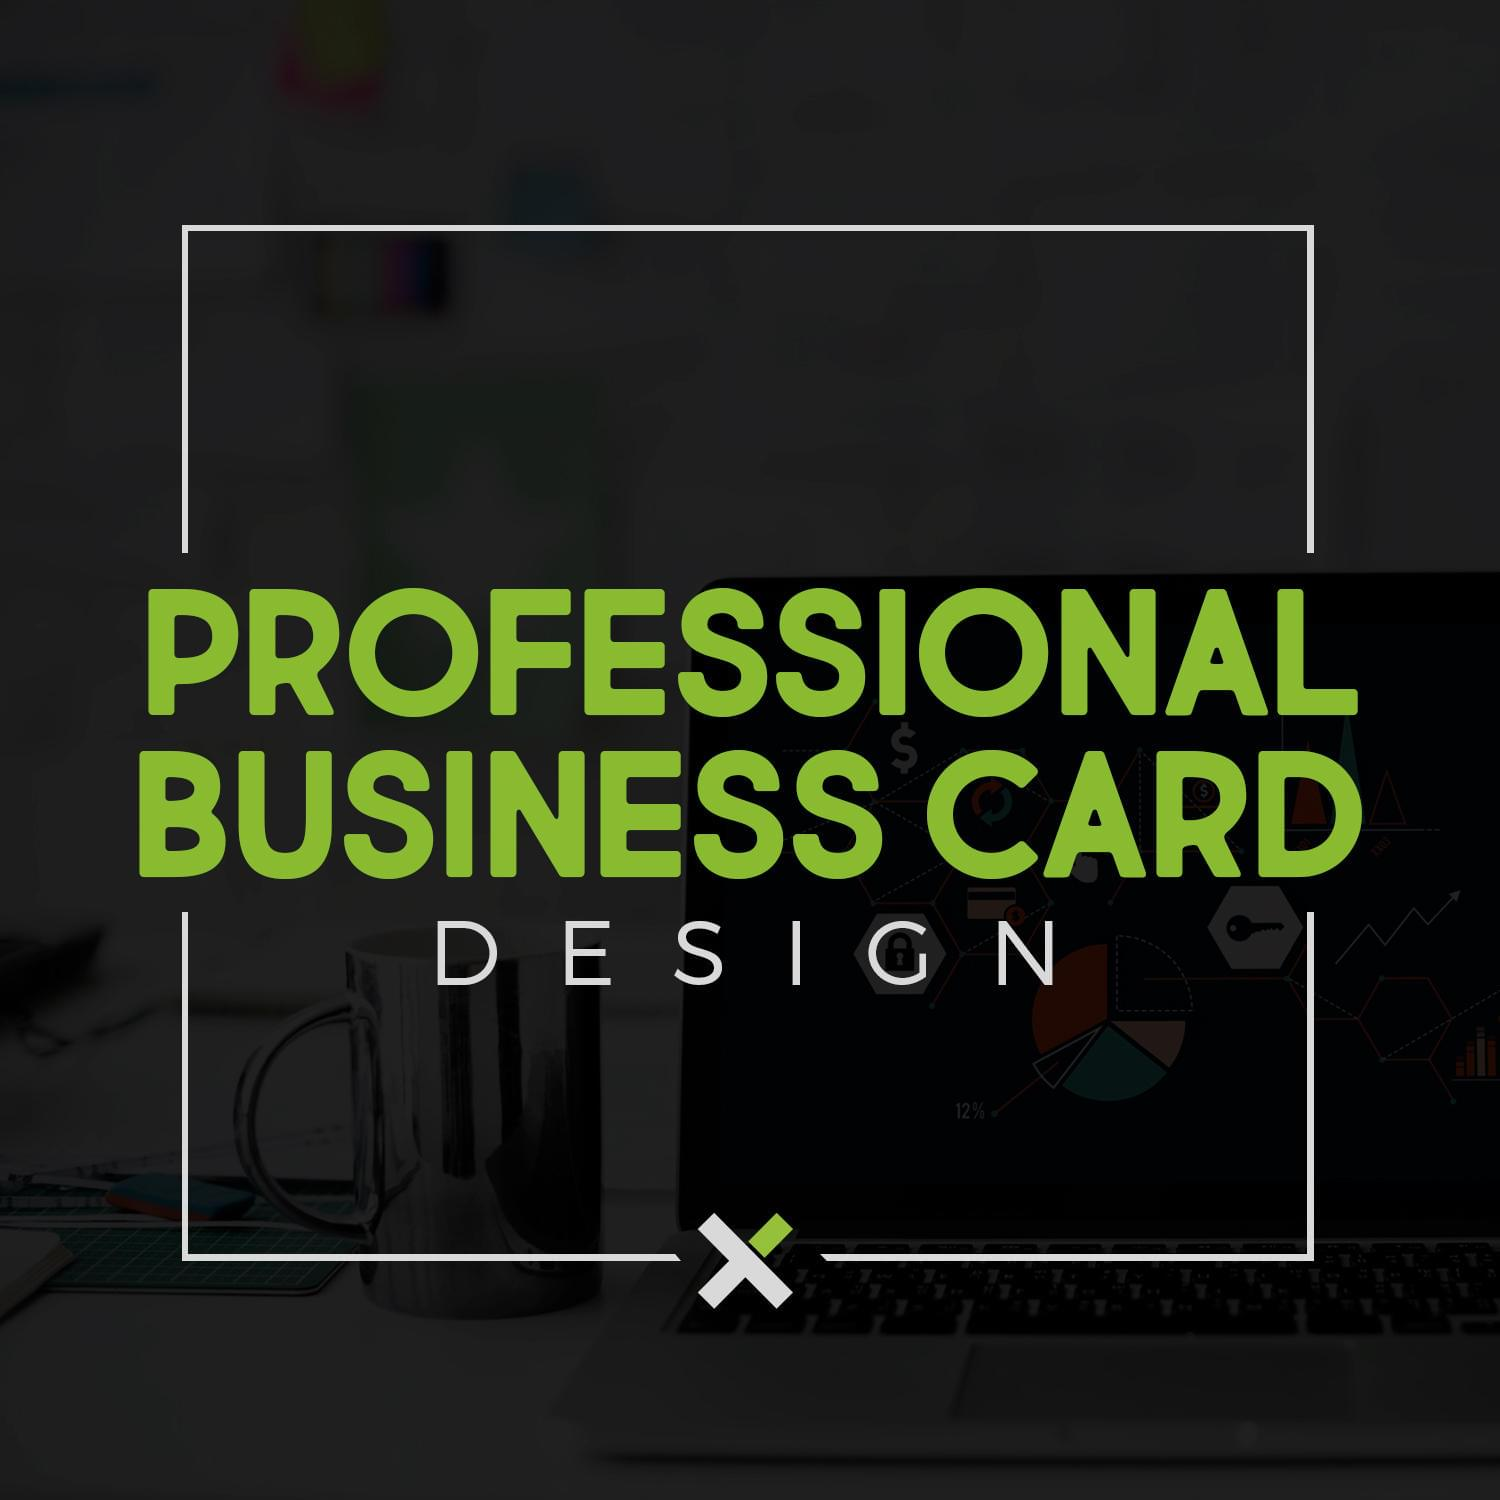 Professional Design Of Business And Personal Cards by touringxx - 114917